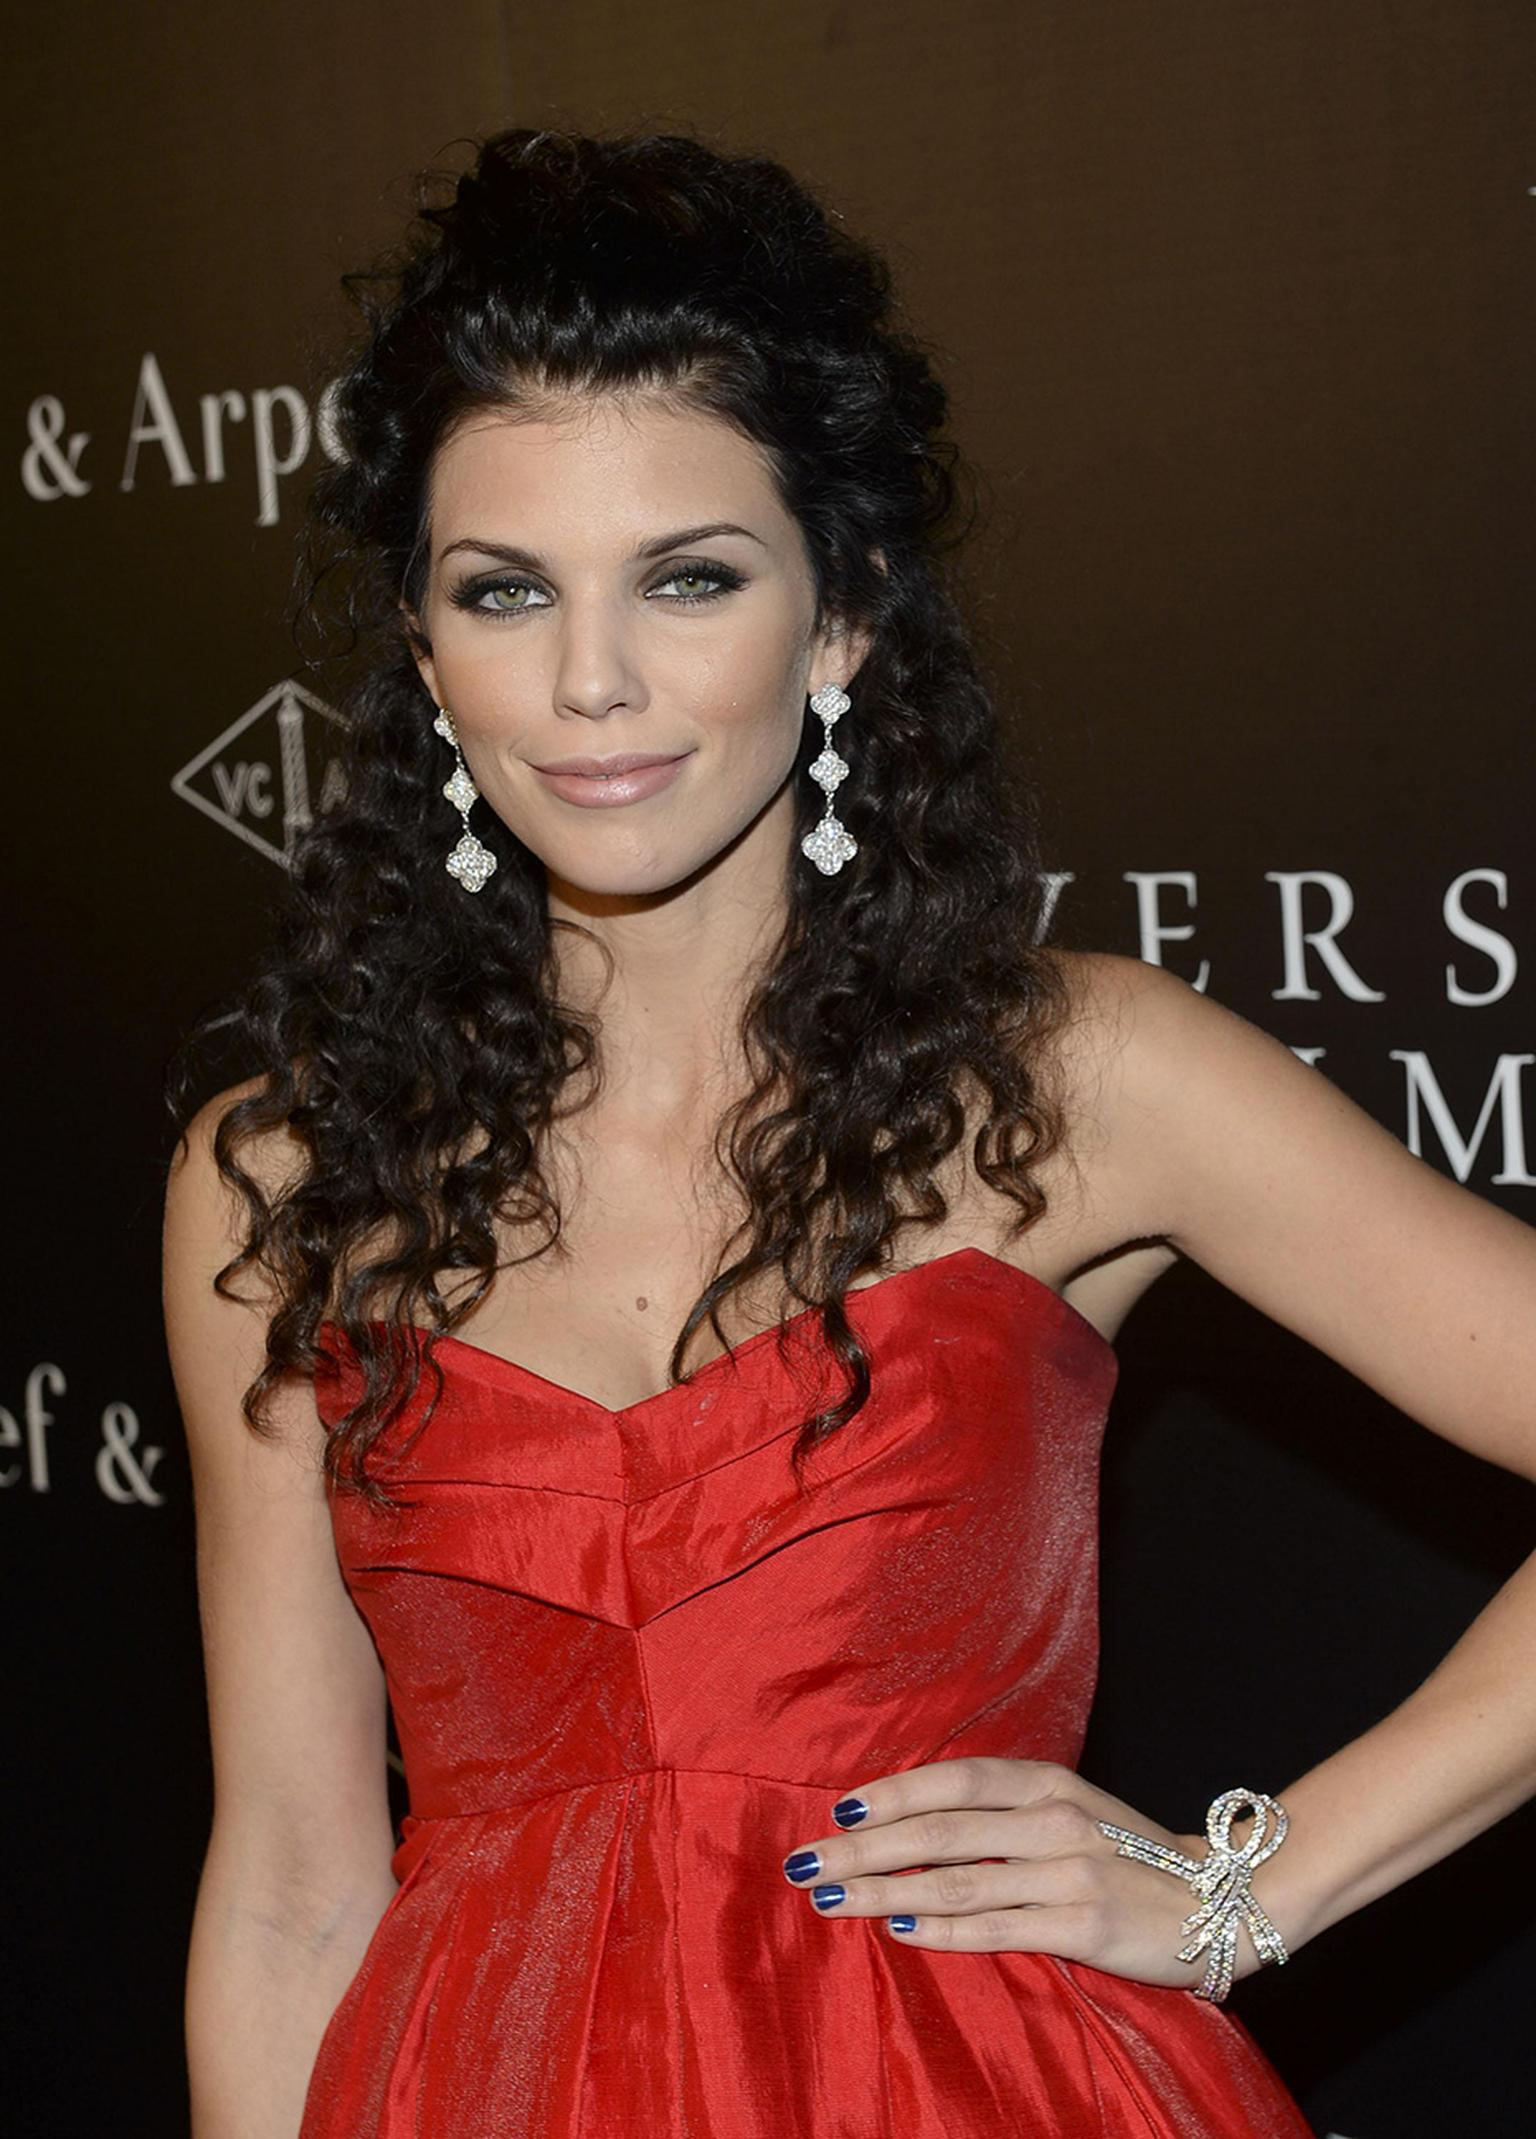 AnnaLynneMcCordVanCleefexhibition